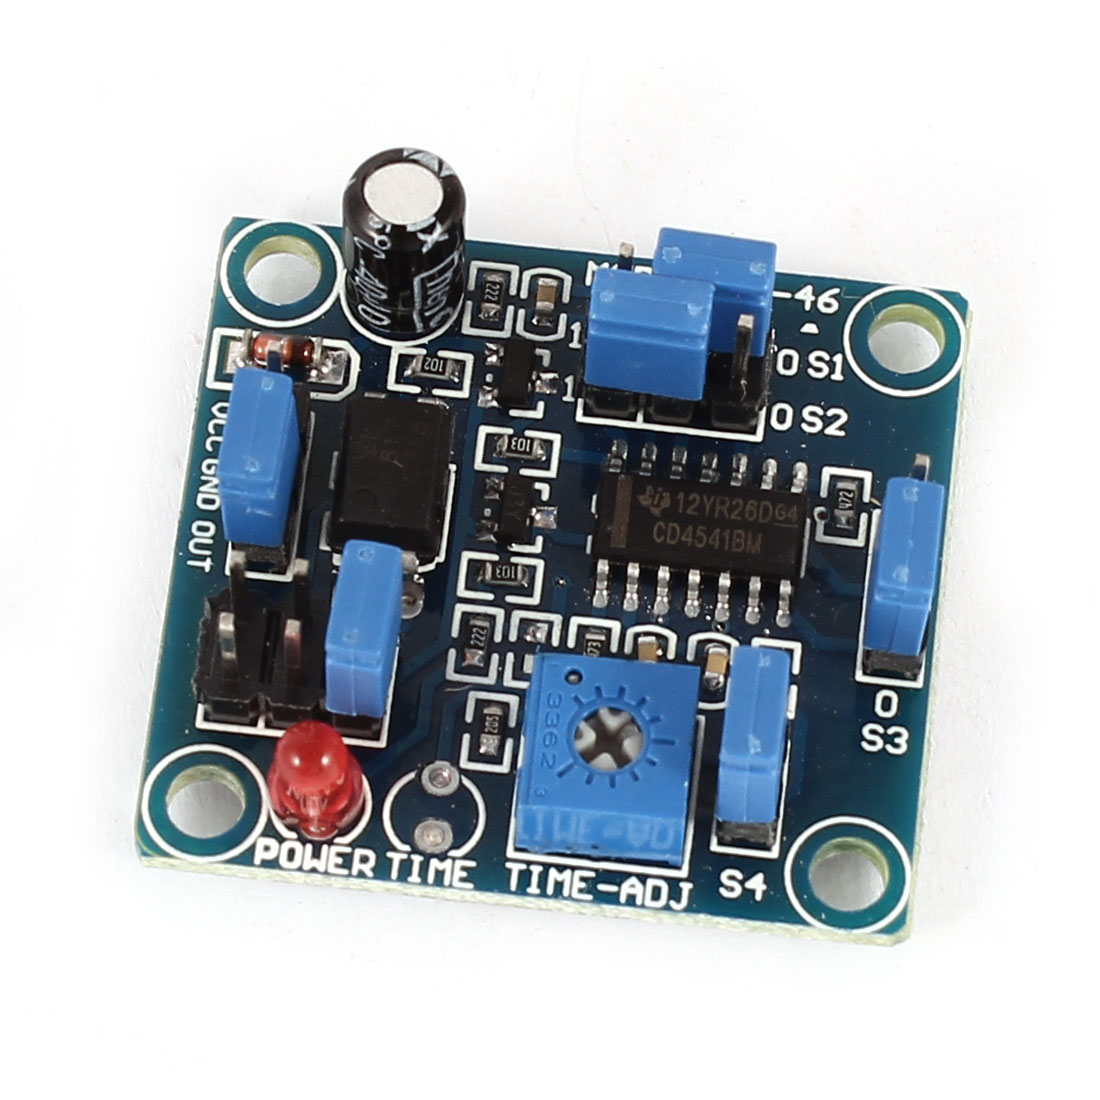 DC 4-12V Relay Control Time Delay Switch PCB Board Module Black Blue